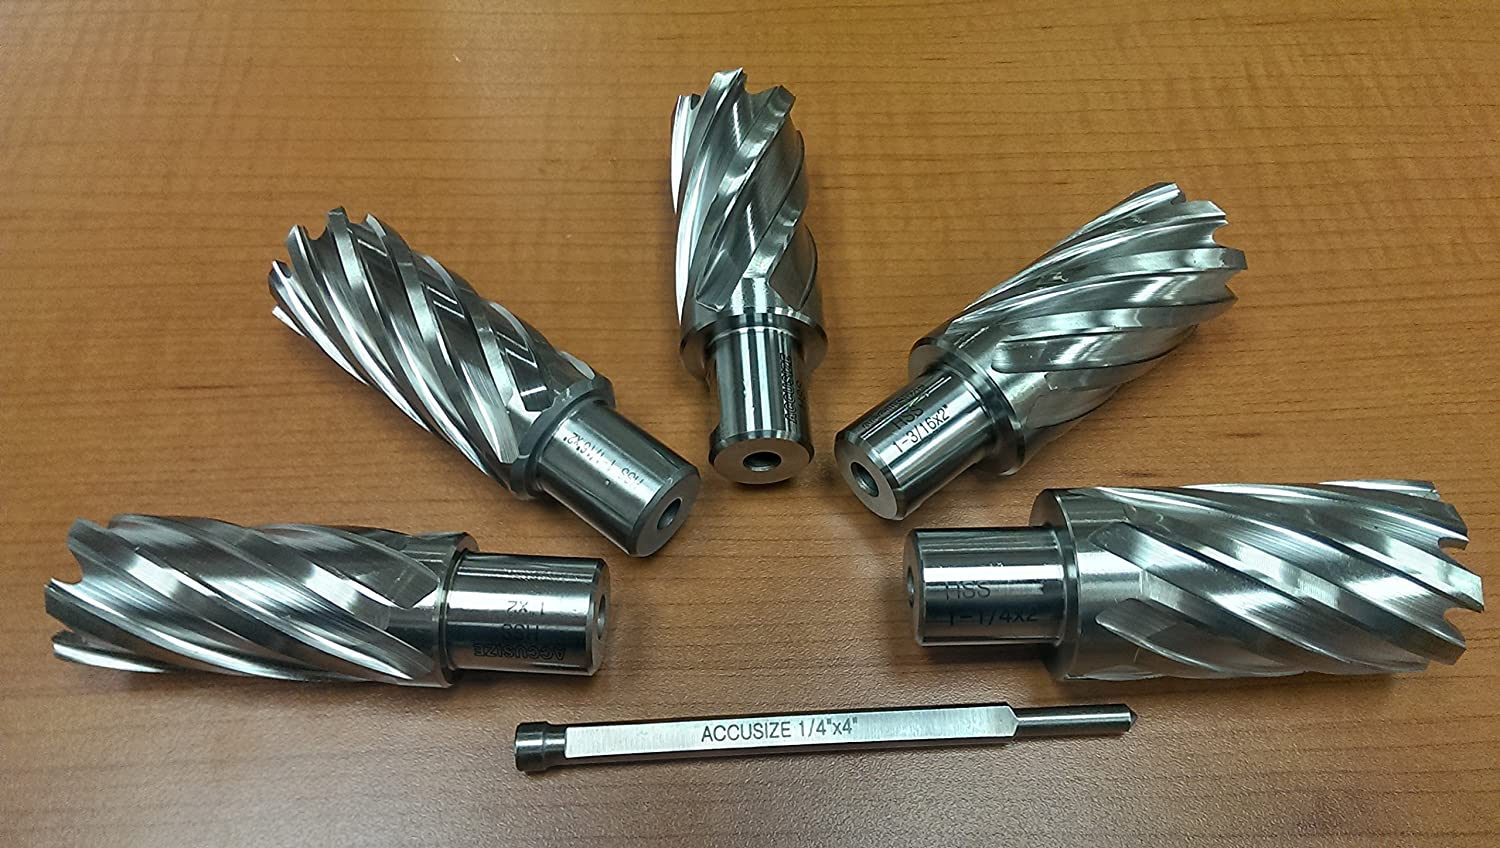 Accusize Industrial Tools 5 Pcs 2 Cutting Depth 1 to 1-1//4 Hss Annular Cutters with 1 Pilot Pin K1